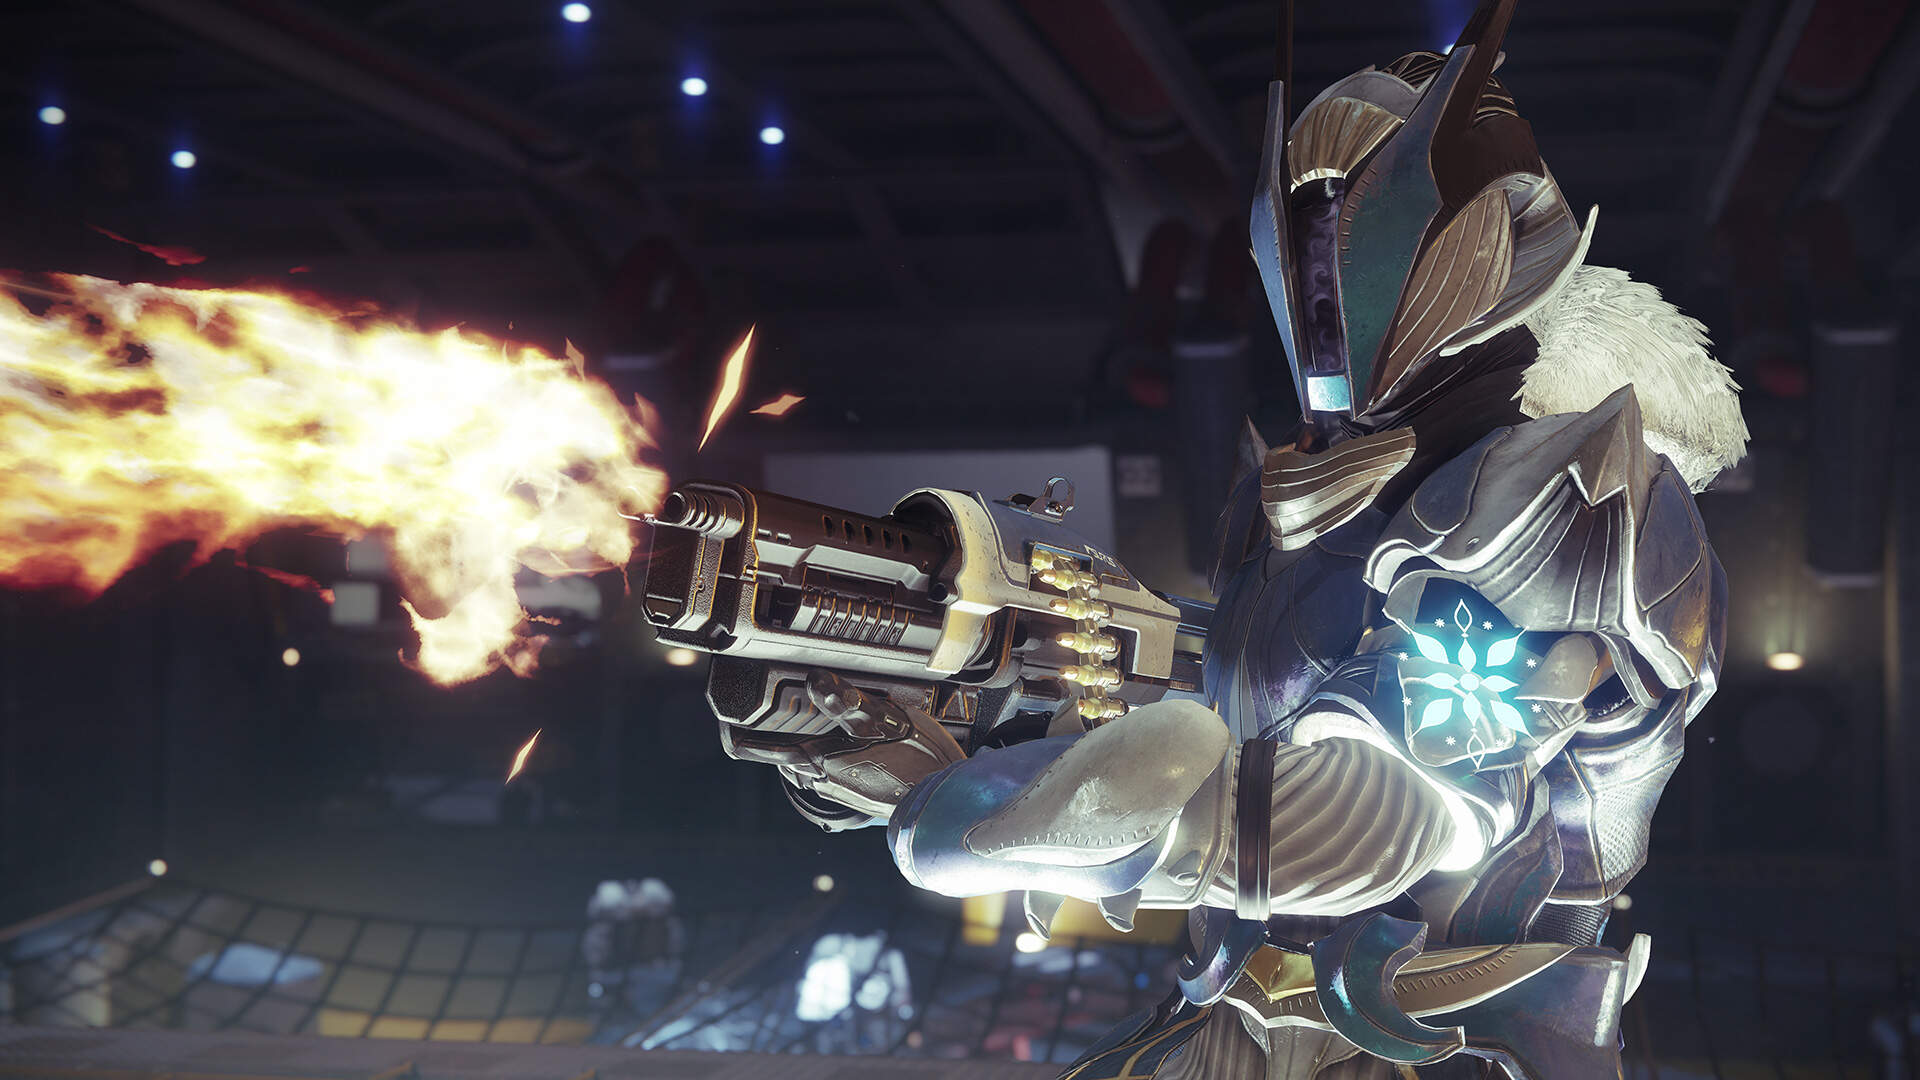 Destiny 2 Weekly Reset Times - When is the Weekly Reset?